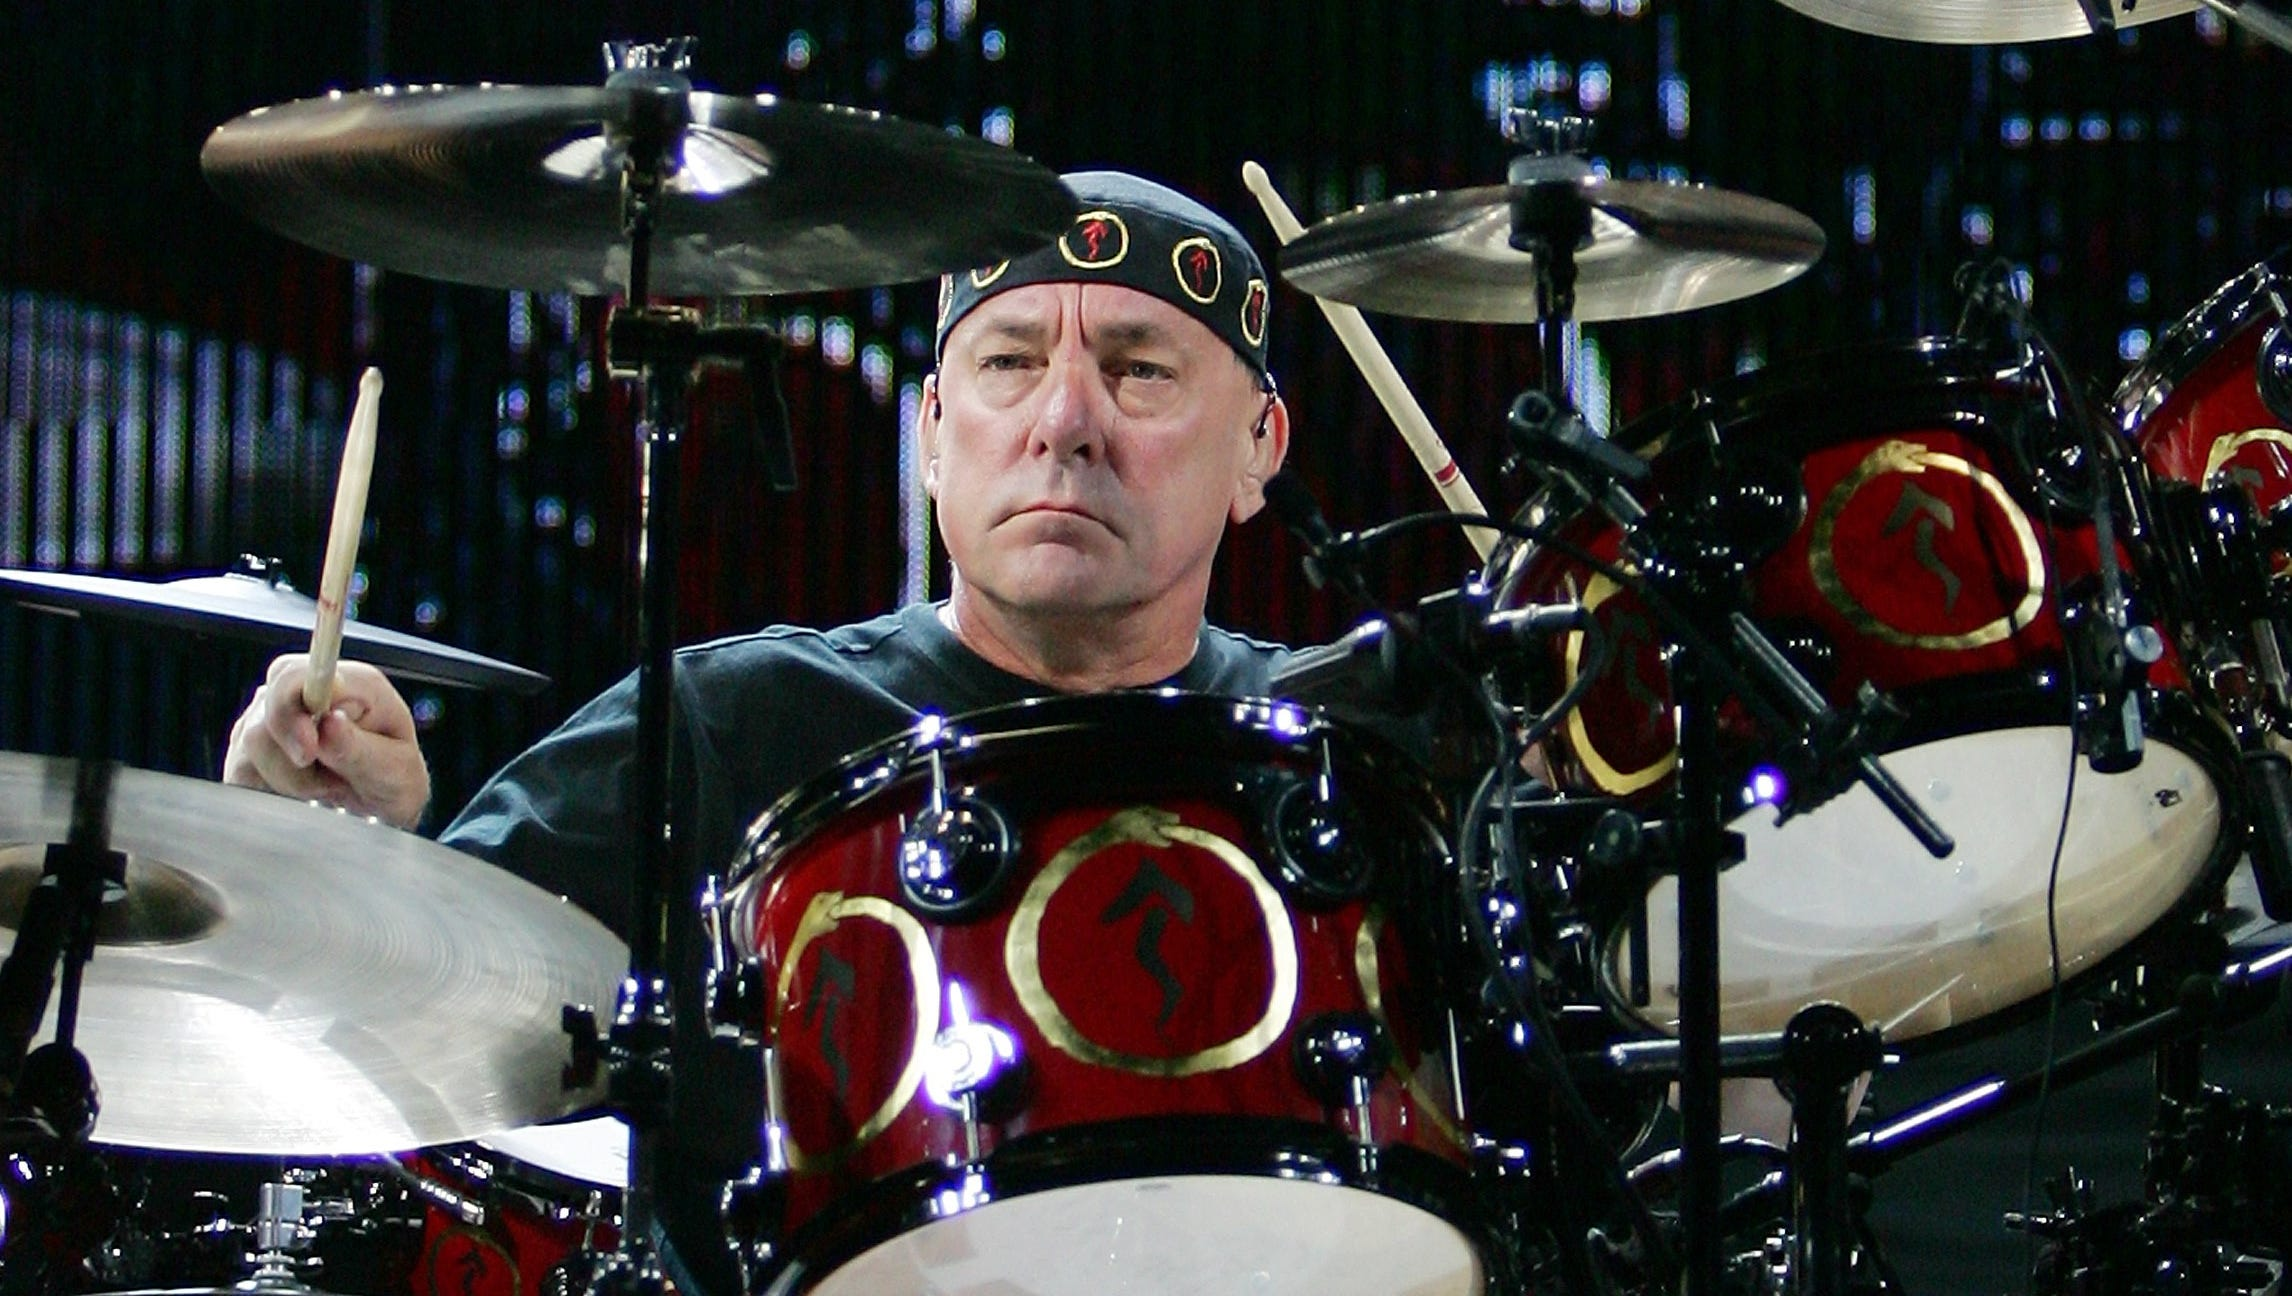 RUSH DRUM TECHNIQUES SONG BOOK DRUMS NEIL PEART